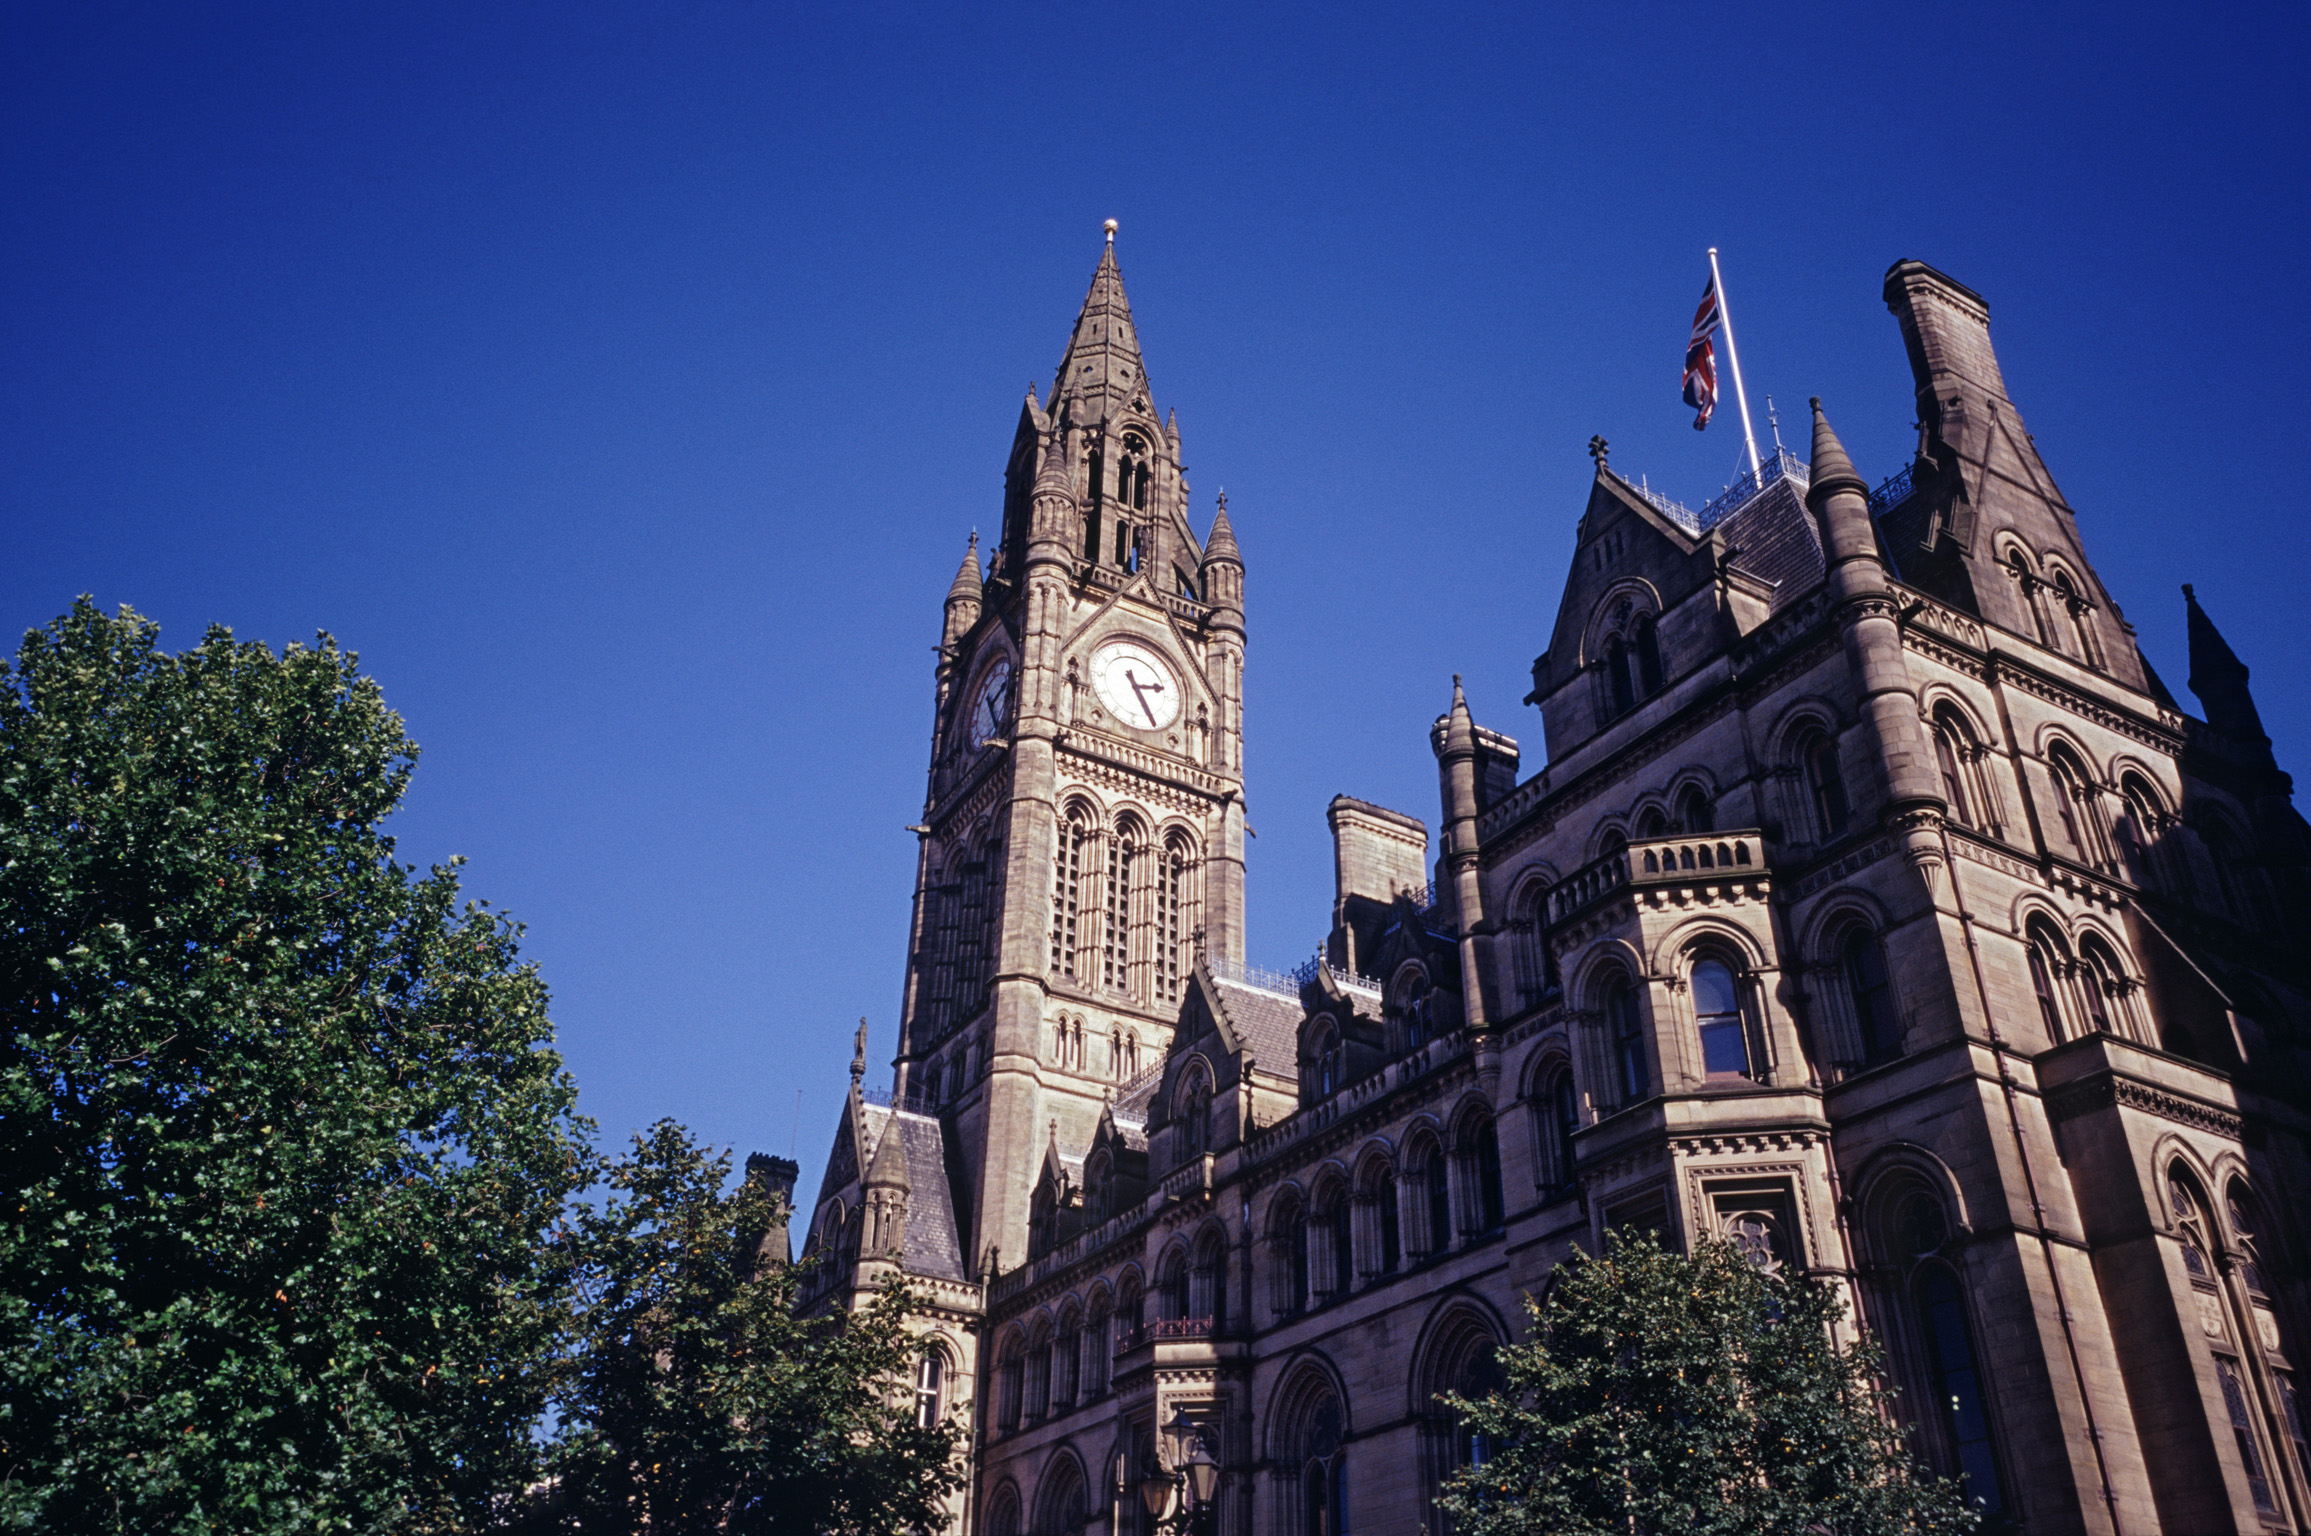 View of the exterior of the Manchester Town Hall with its Gothic revivaql architecture and ornate clock tower against a clear blue sunny sky